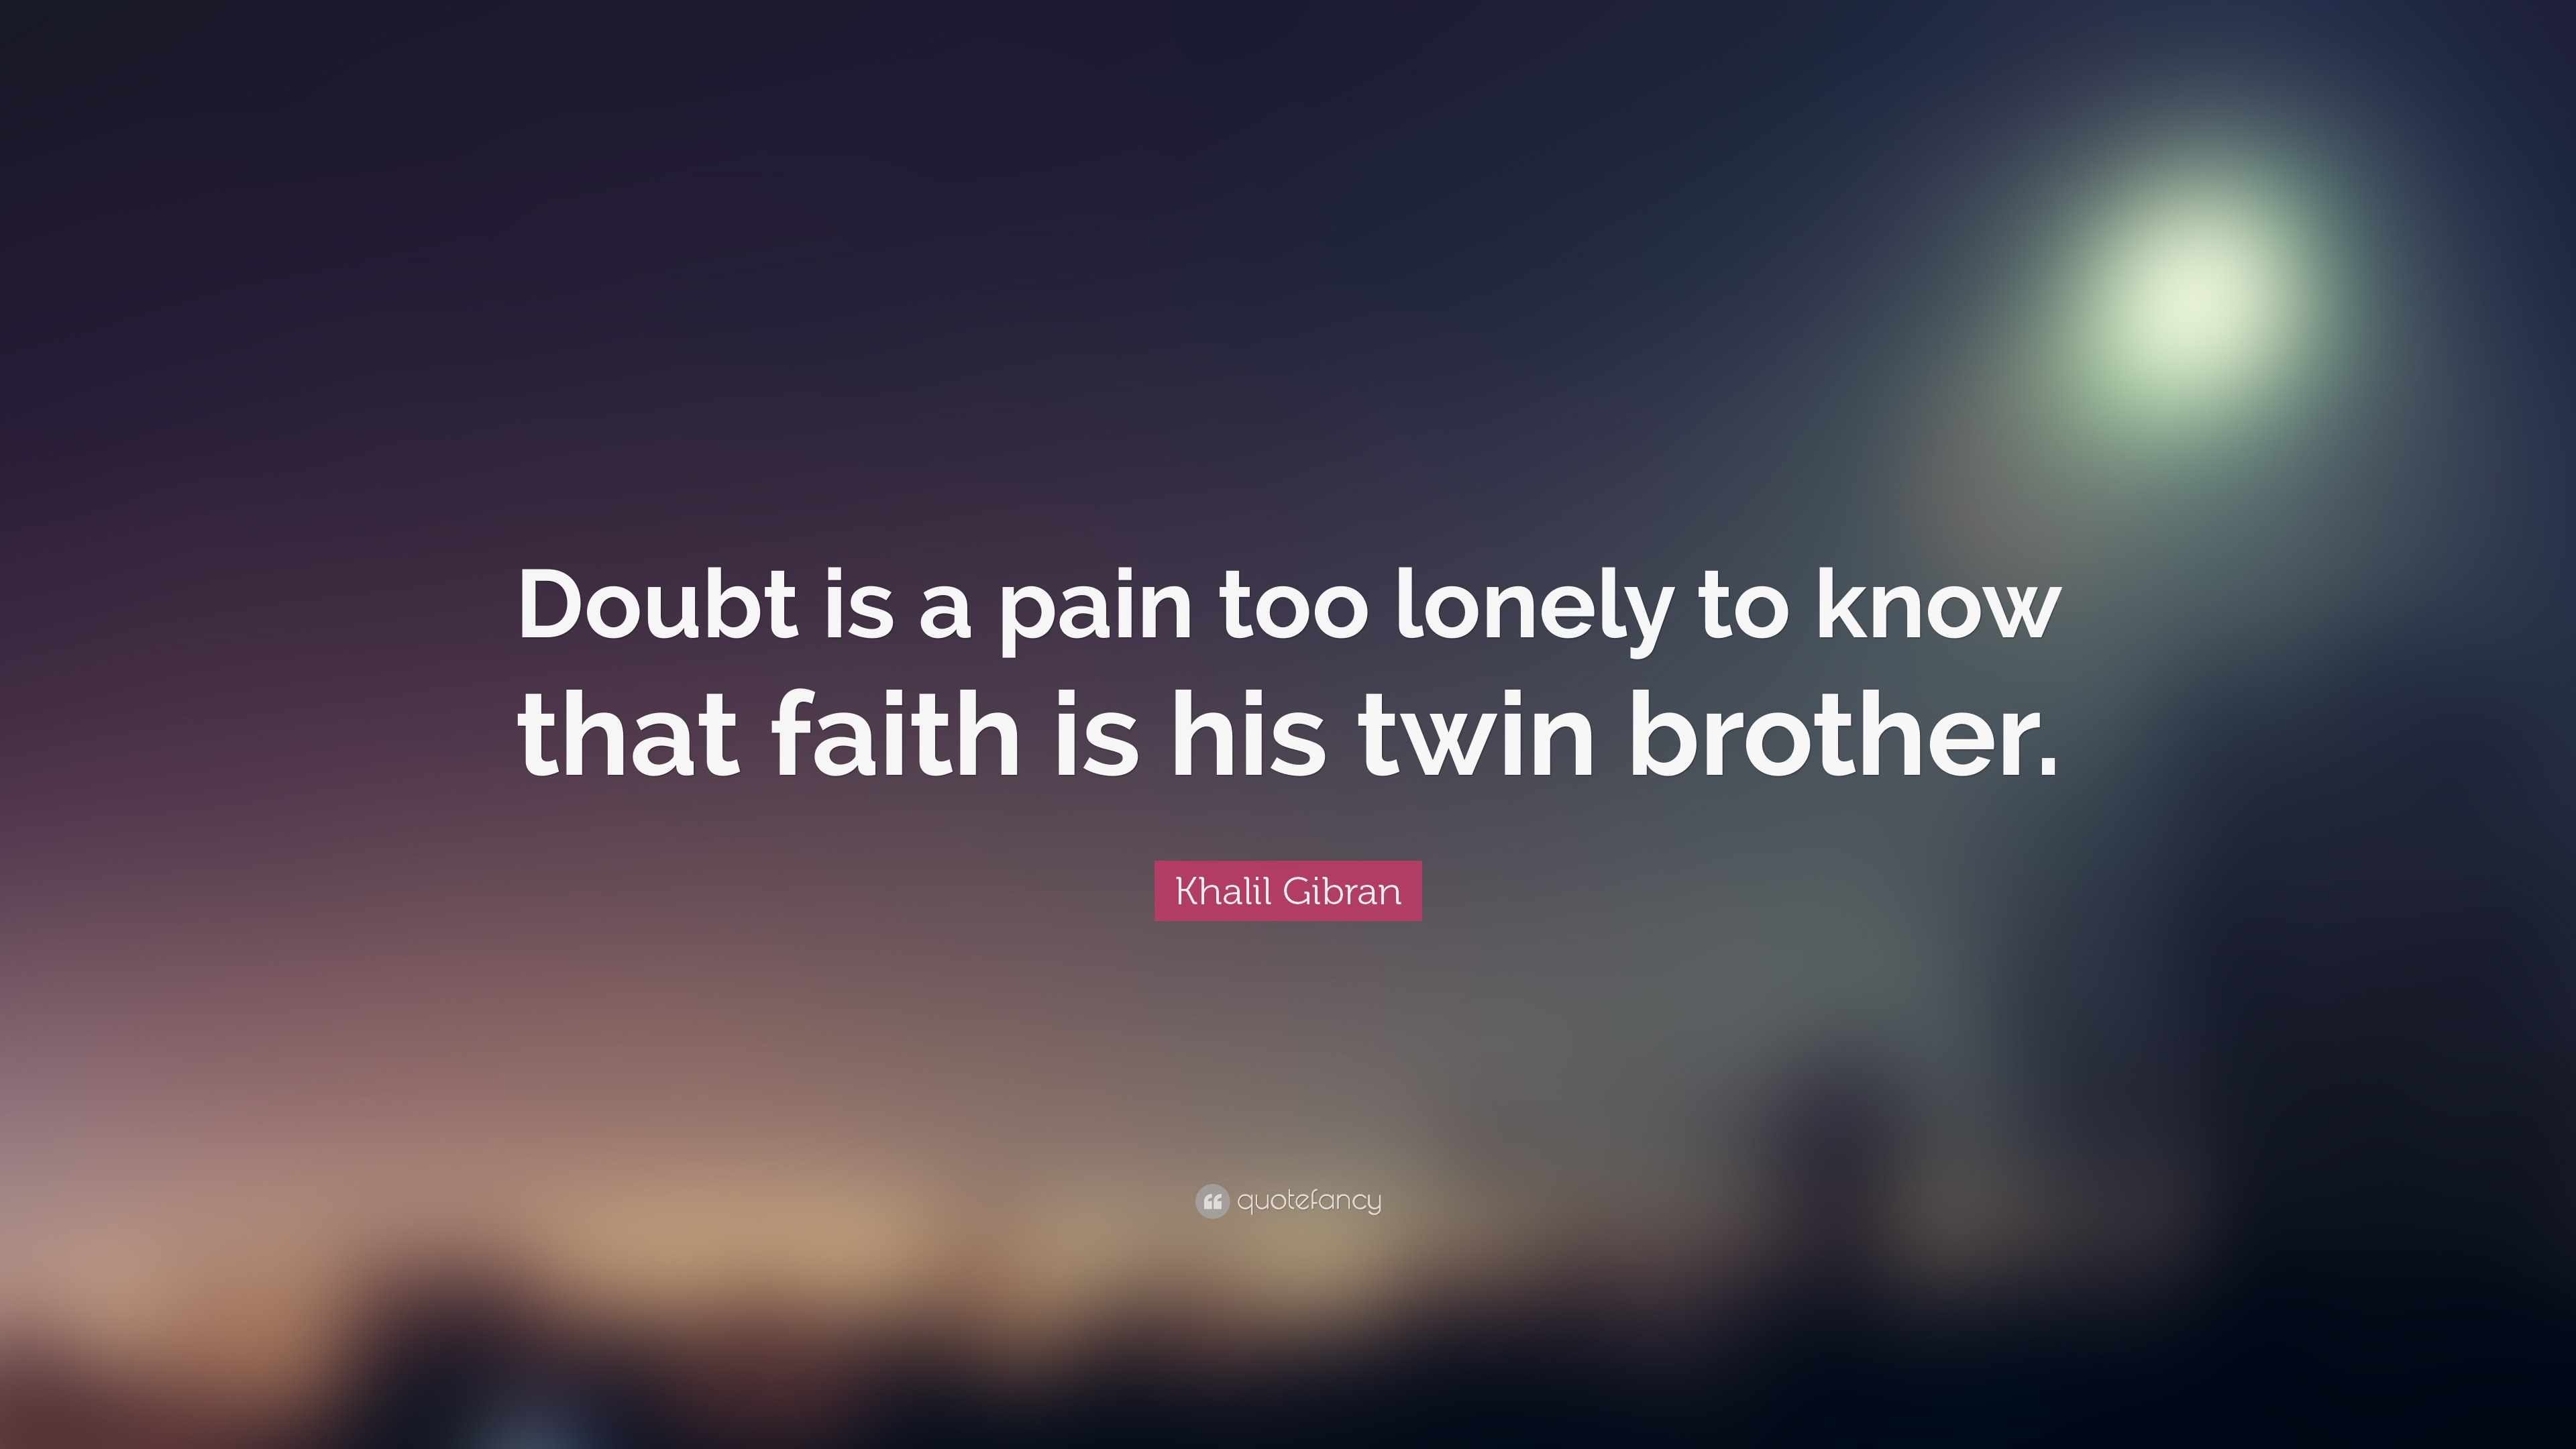 Lonely Quotes Doubt Is A Pain Too To Know That Faith His